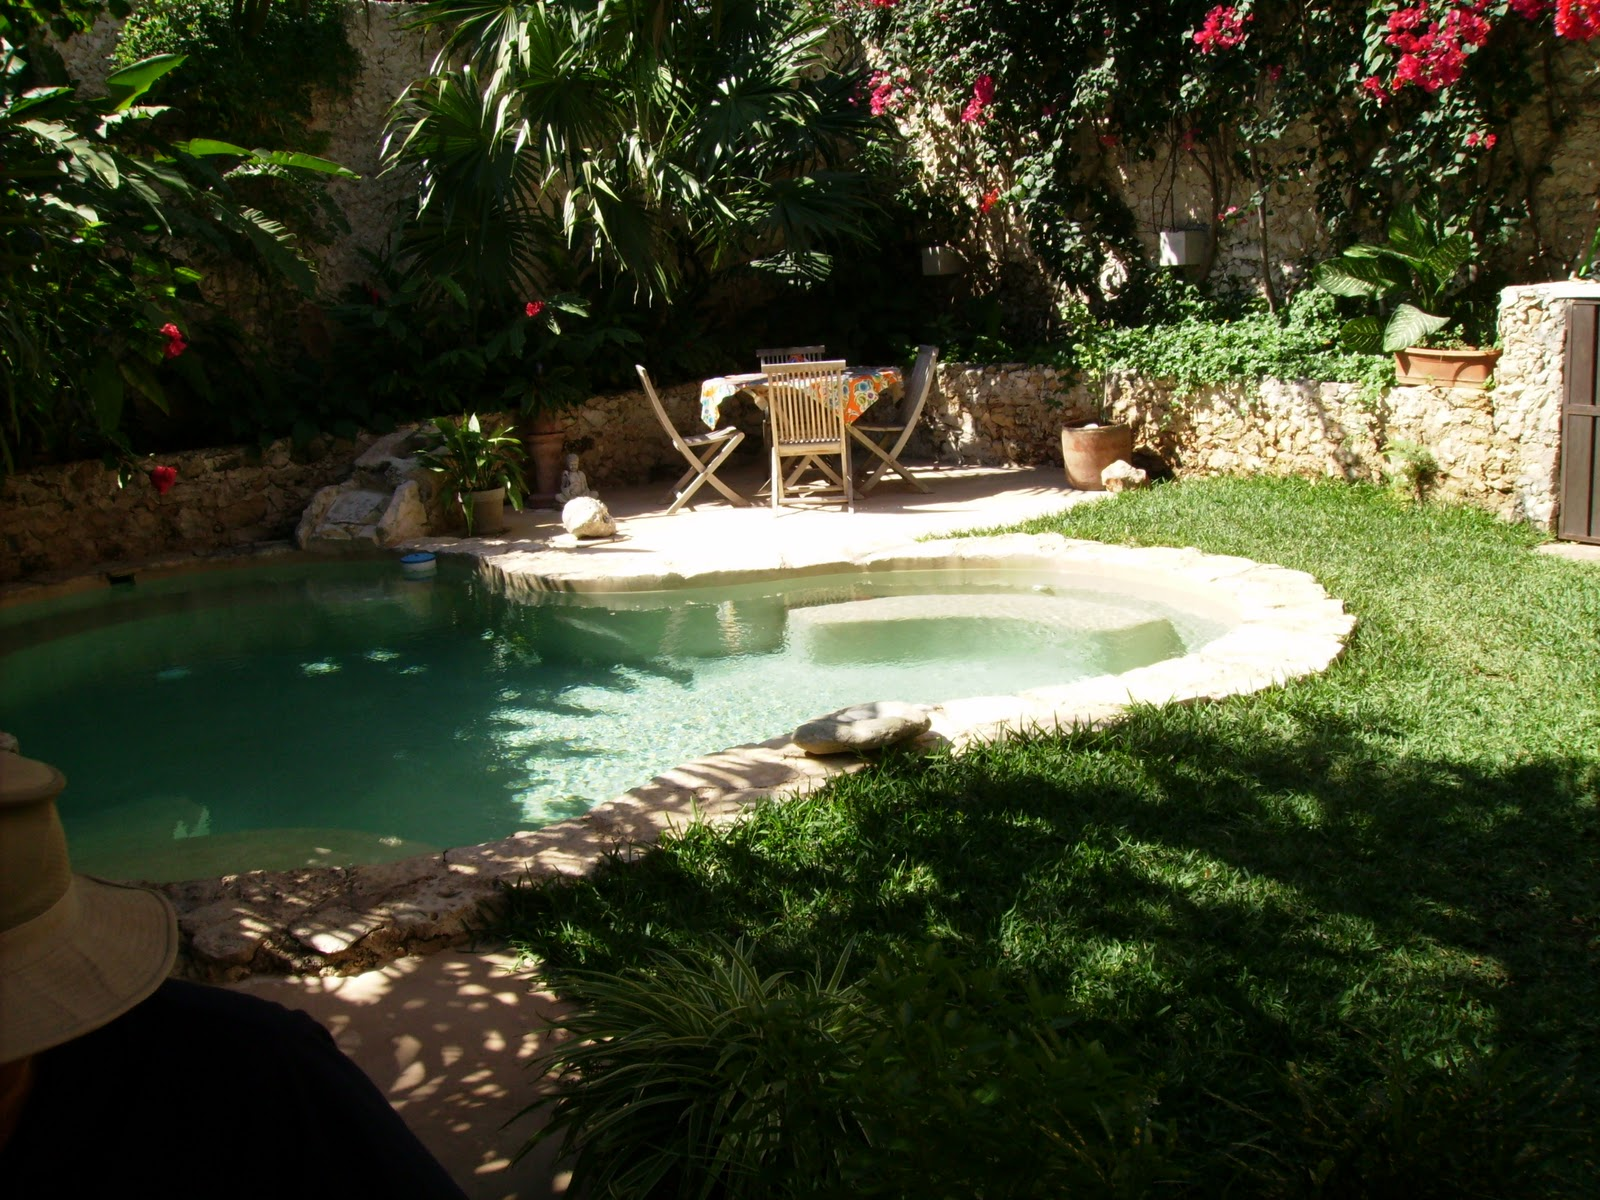 My View from Merida: Nice backyard pool- nope it's not mine!